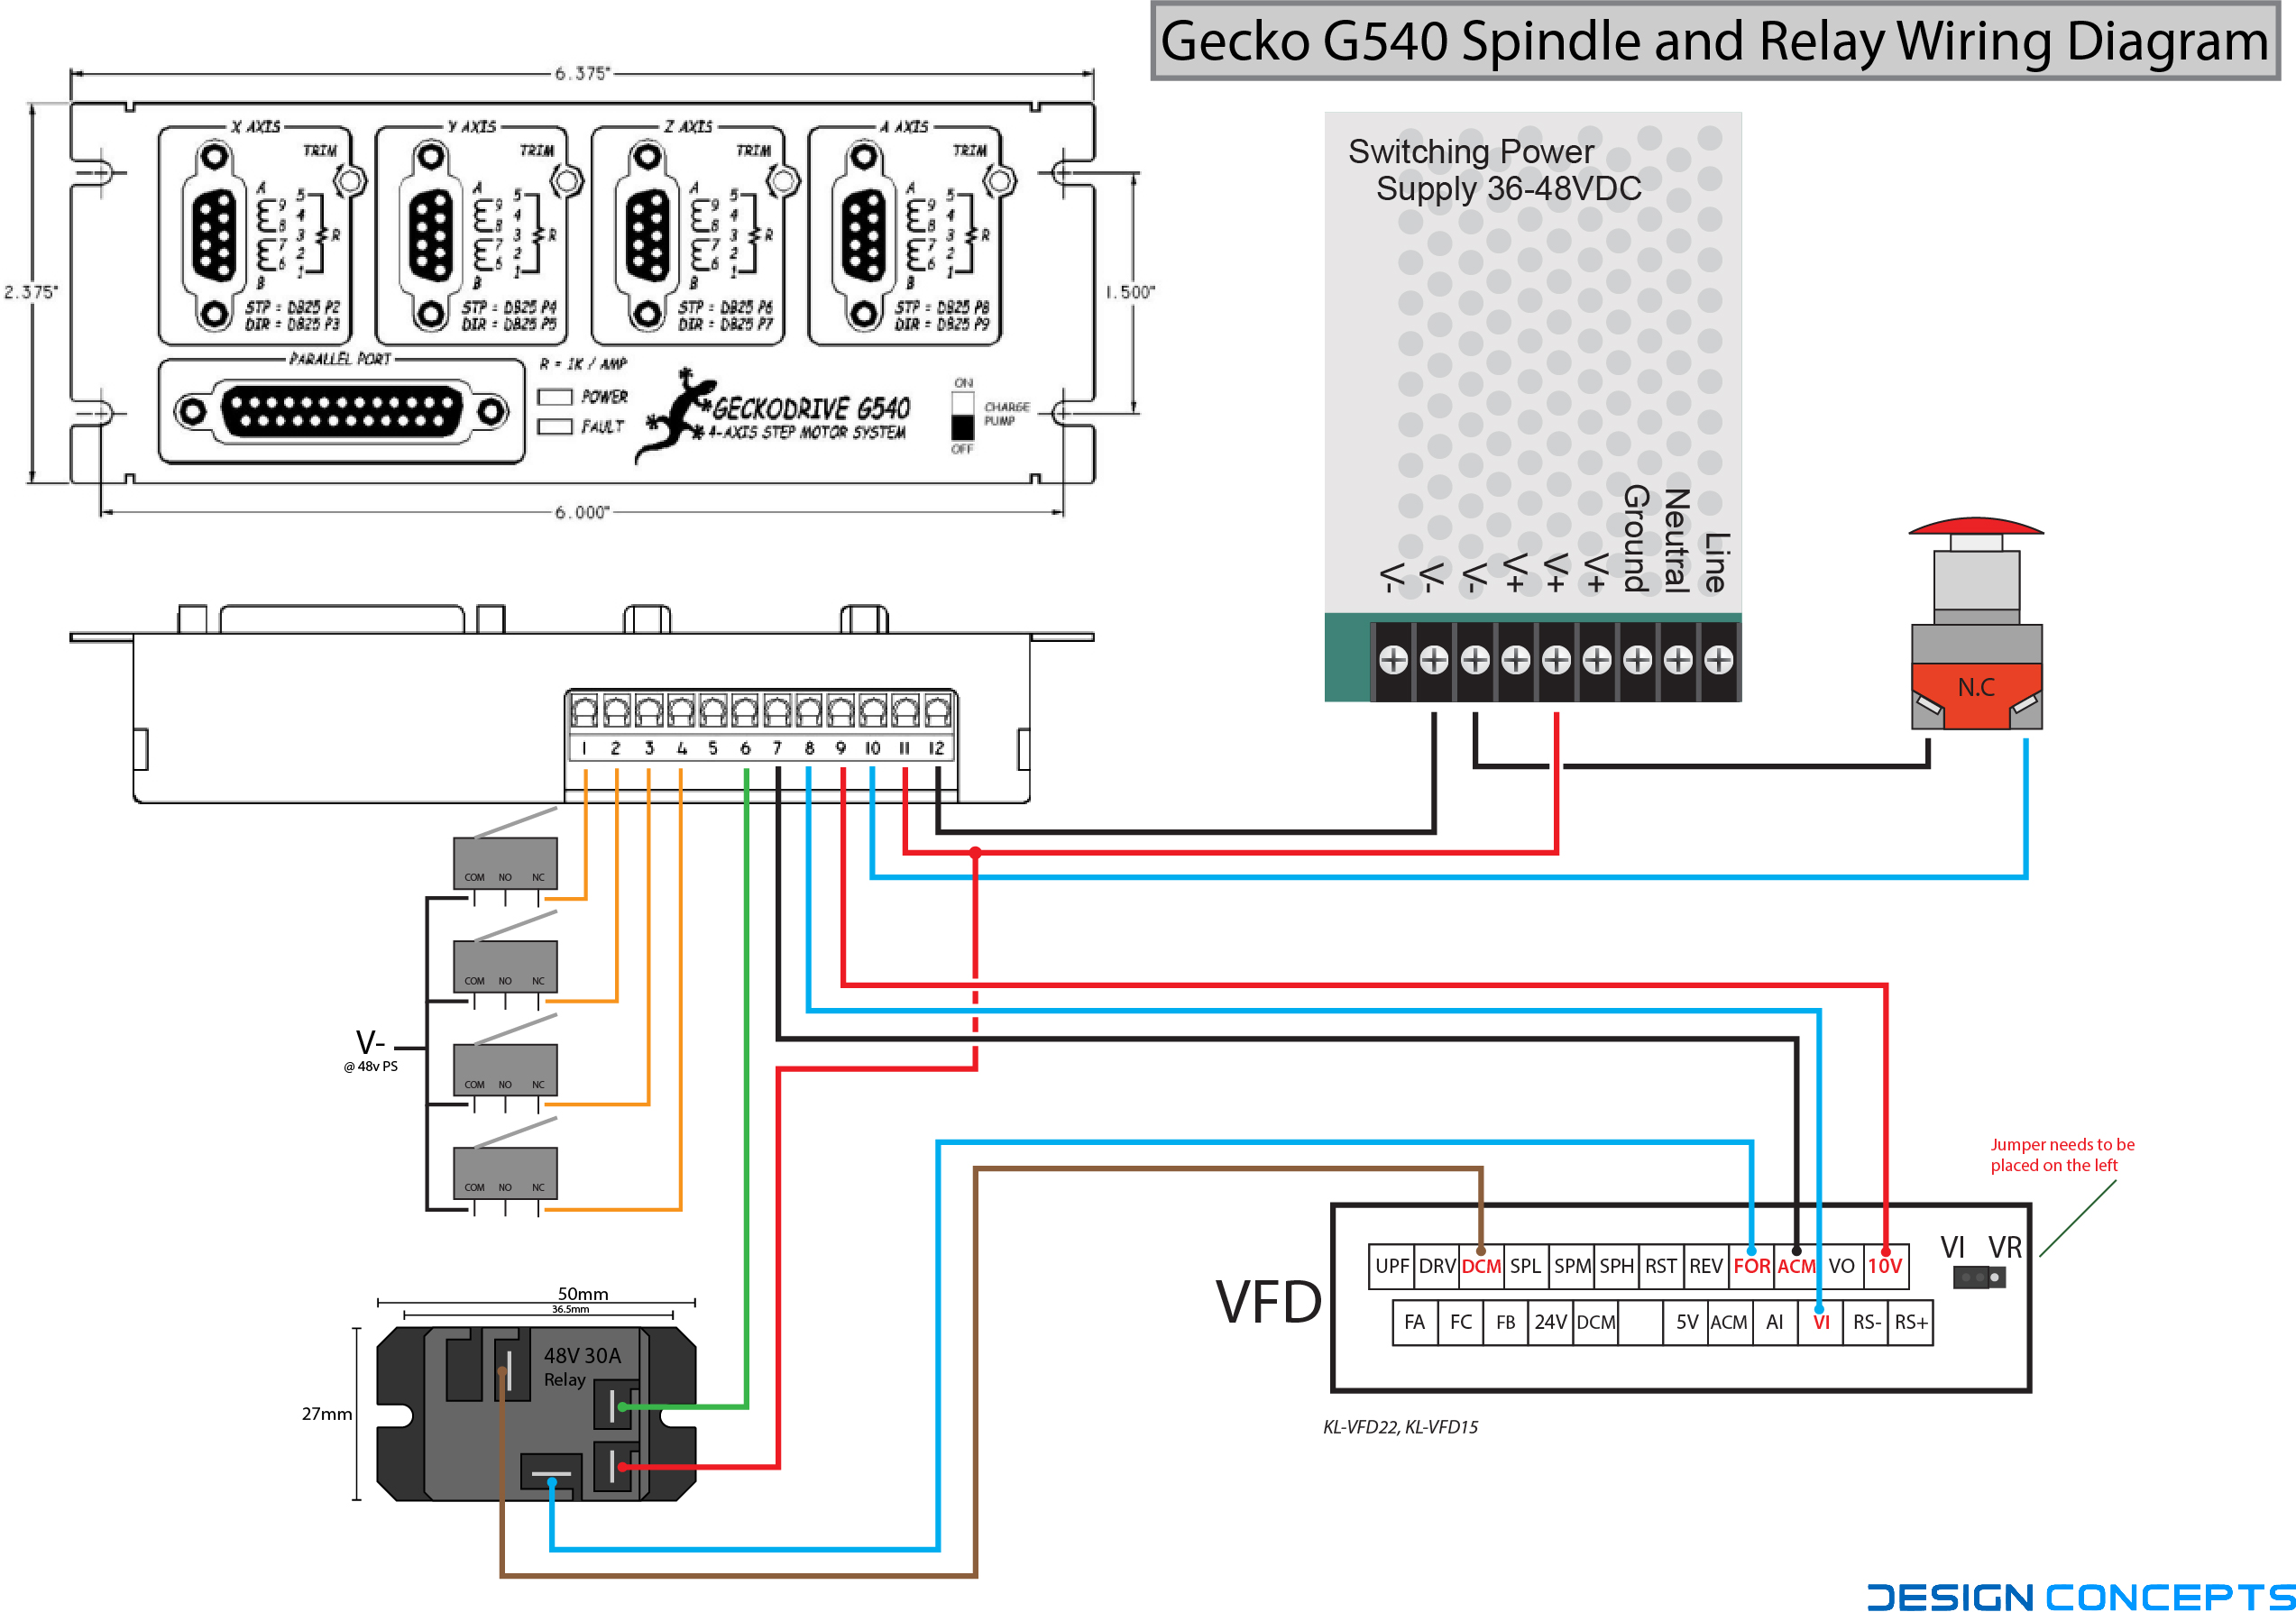 medium resolution of g540 spindle and relay wiring diagram the blog spindle wiring diagram g540 wiring diagram with spindle